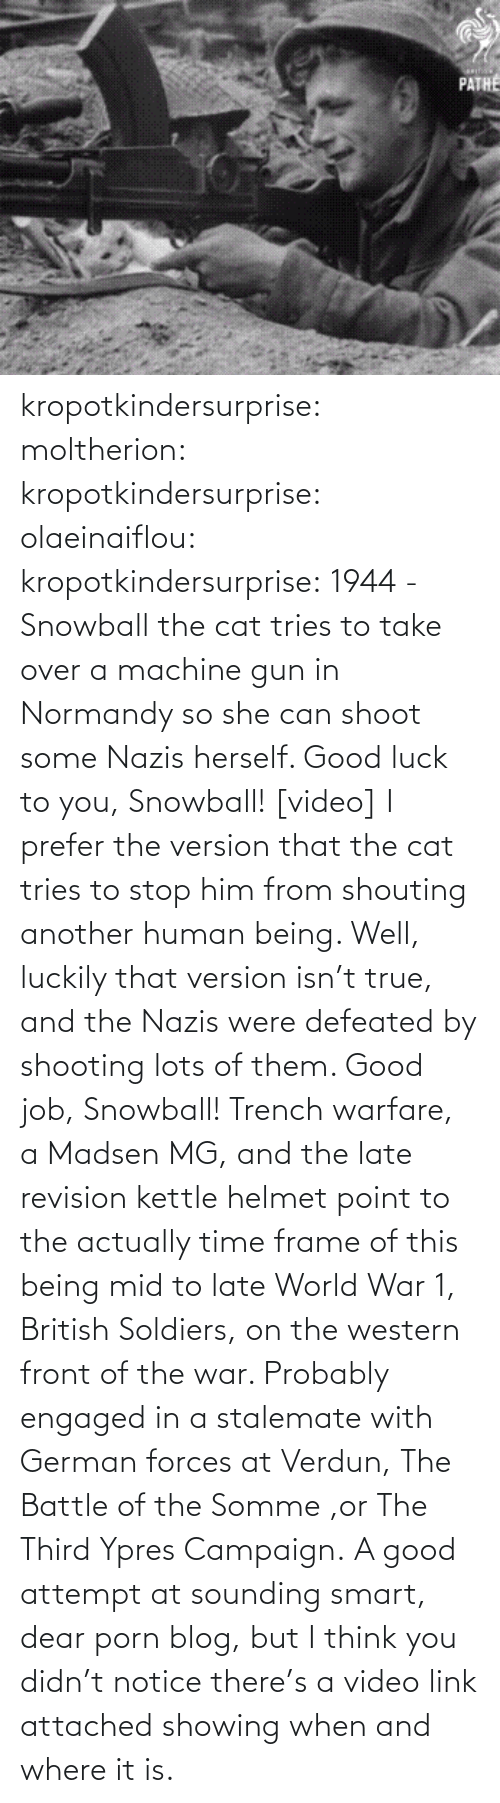 world war 1: PATHE kropotkindersurprise: moltherion:  kropotkindersurprise:  olaeinaiflou:  kropotkindersurprise: 1944 - Snowball the cat tries to take over a machine gun in Normandy so she can shoot some Nazis herself. Good luck to you, Snowball! [video]  I prefer the version that the cat tries to stop him from shouting another human being.   Well, luckily that version isn't true, and the Nazis were defeated by shooting lots of them. Good job, Snowball!   Trench warfare, a Madsen MG, and the late revision kettle helmet point to the actually time frame of this being mid to late World War 1, British Soldiers, on the western front of the war. Probably engaged in a stalemate with German forces at Verdun, The Battle of the Somme ,or The Third Ypres Campaign.  A good attempt at sounding smart, dear porn blog, but I think you didn't notice there's a video link attached showing when and where it is.